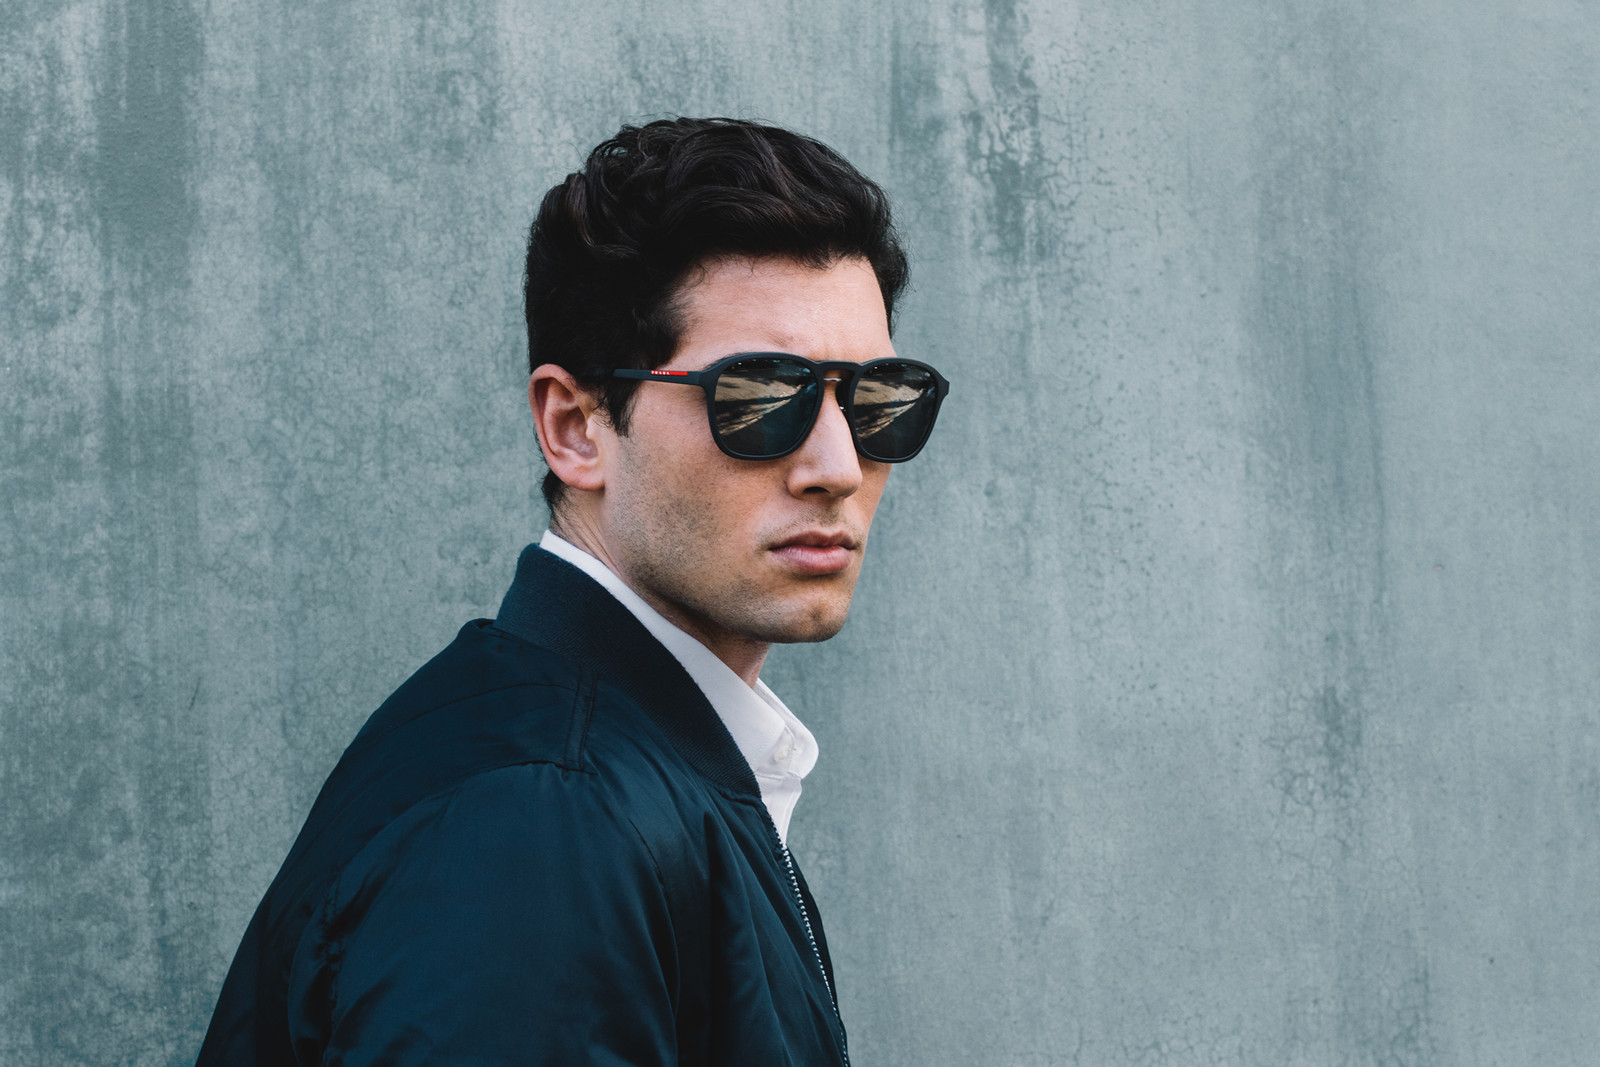 Full Range of Styles in the Prada Linea Rossa Sunglass Line